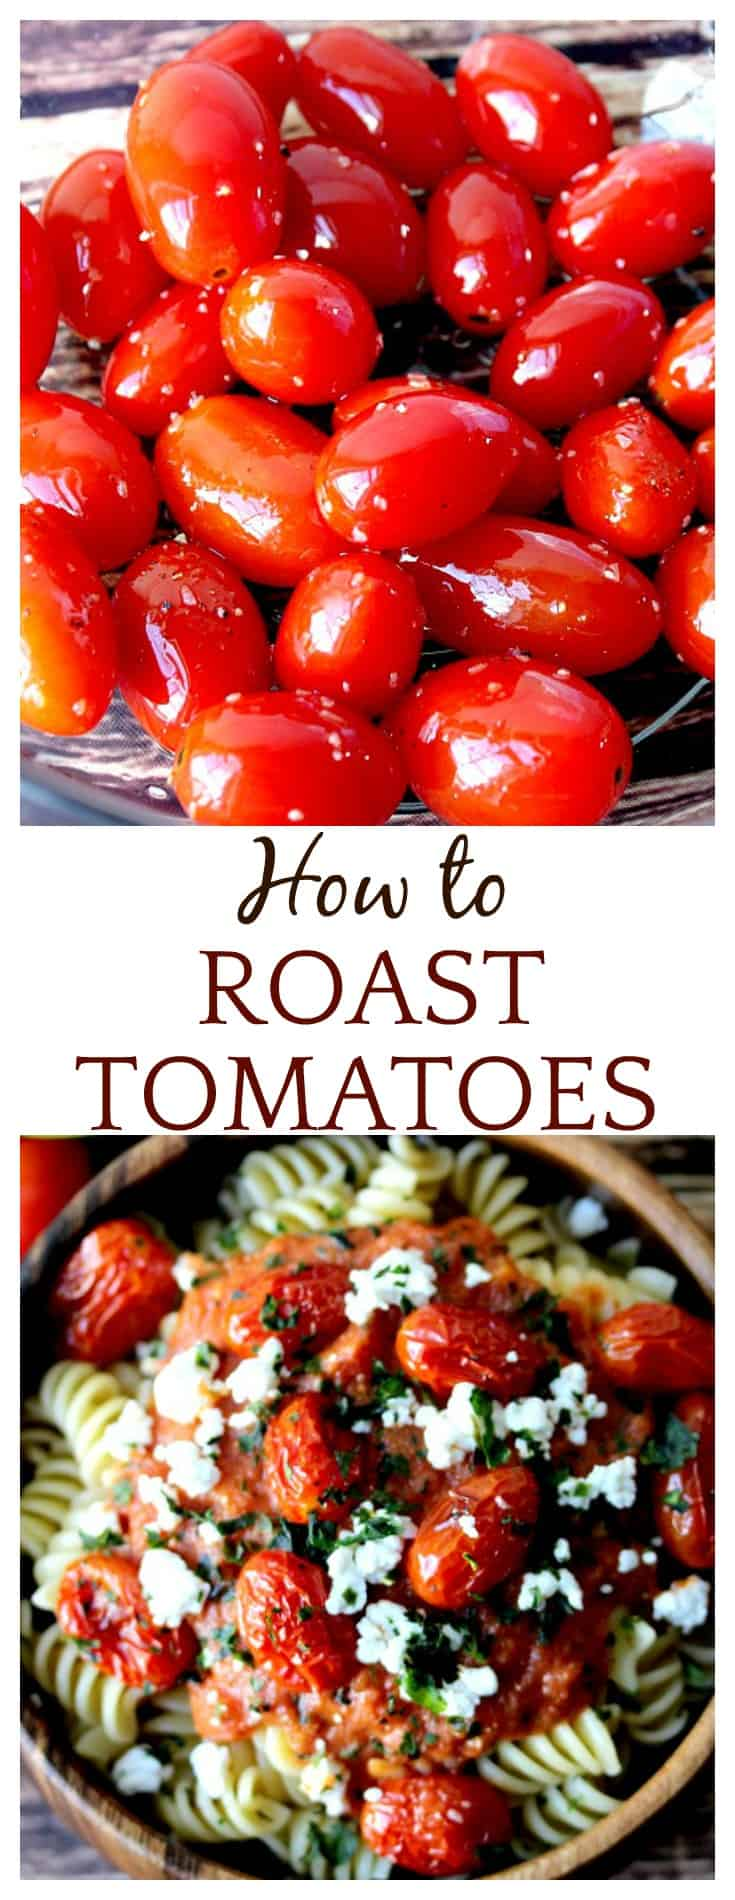 If only I knew how to make oven roasted tomatoes was so easy I would have done it a hundred times already!! Use this easy roasted tomatoes recipe to add these delicious little pops of flavor to all kinds of dishes from pasta to salads to sandwiches! Just yum!